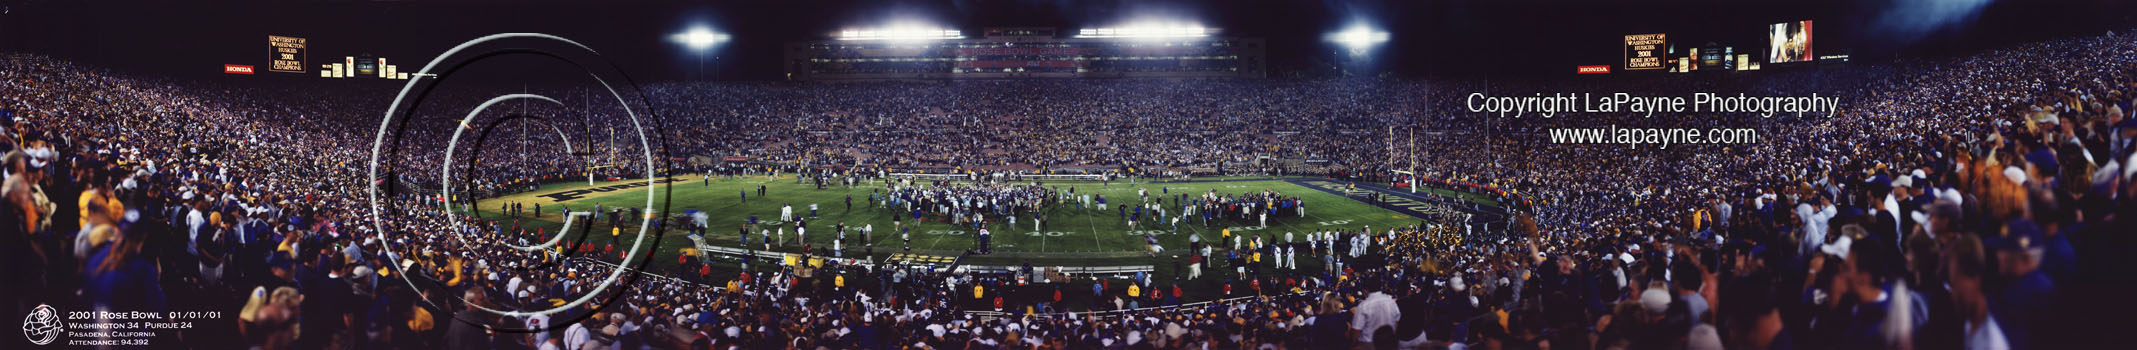 Rose Bowl 2001 - Celebration photo